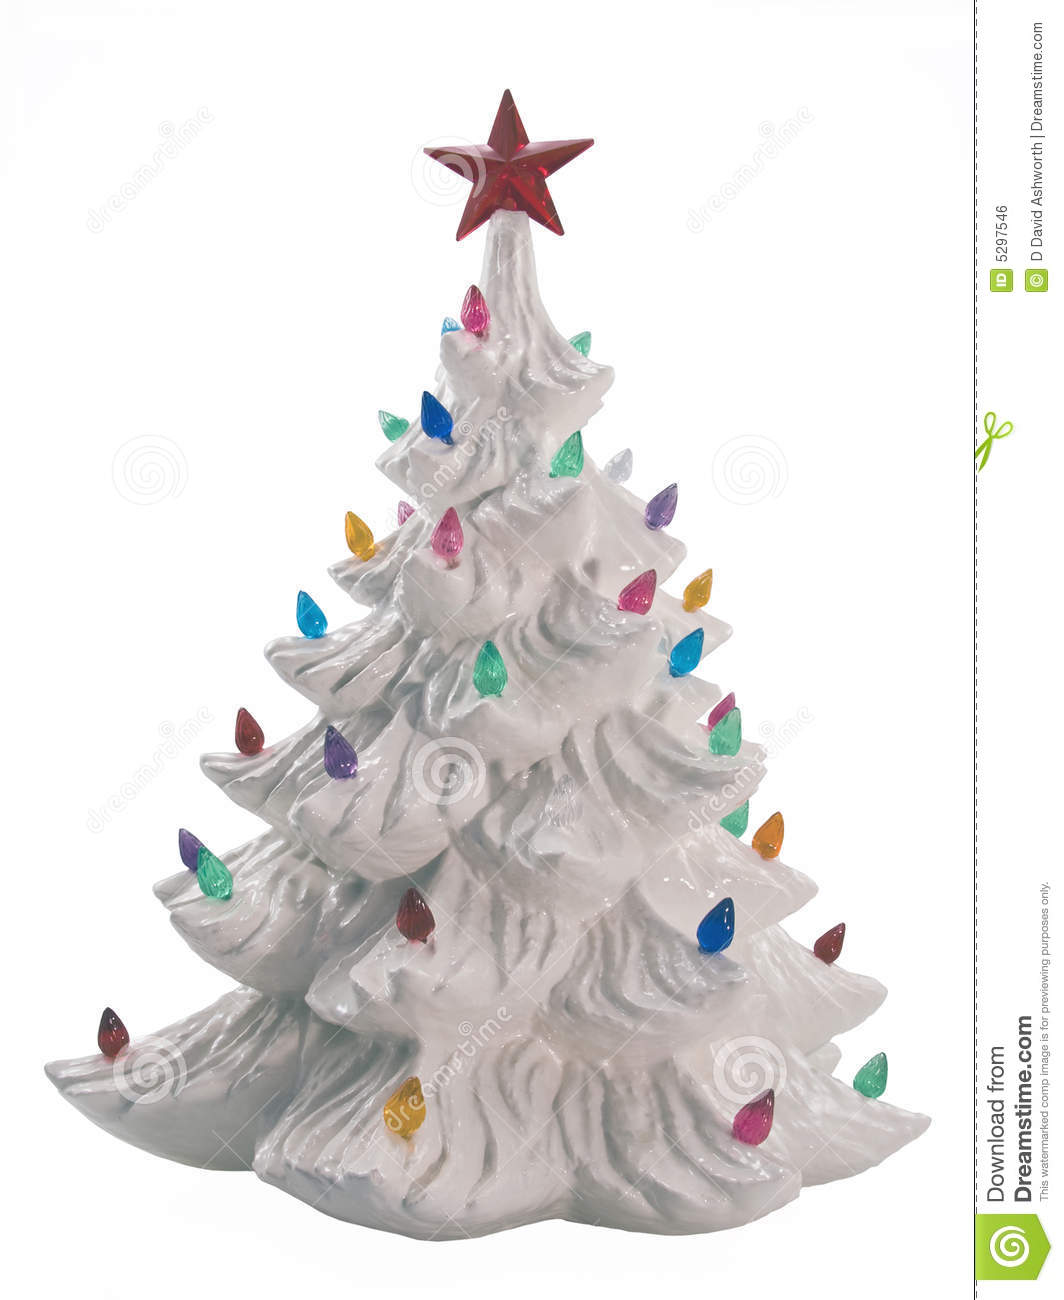 Plastic Bulbs For Ceramic Christmas Trees